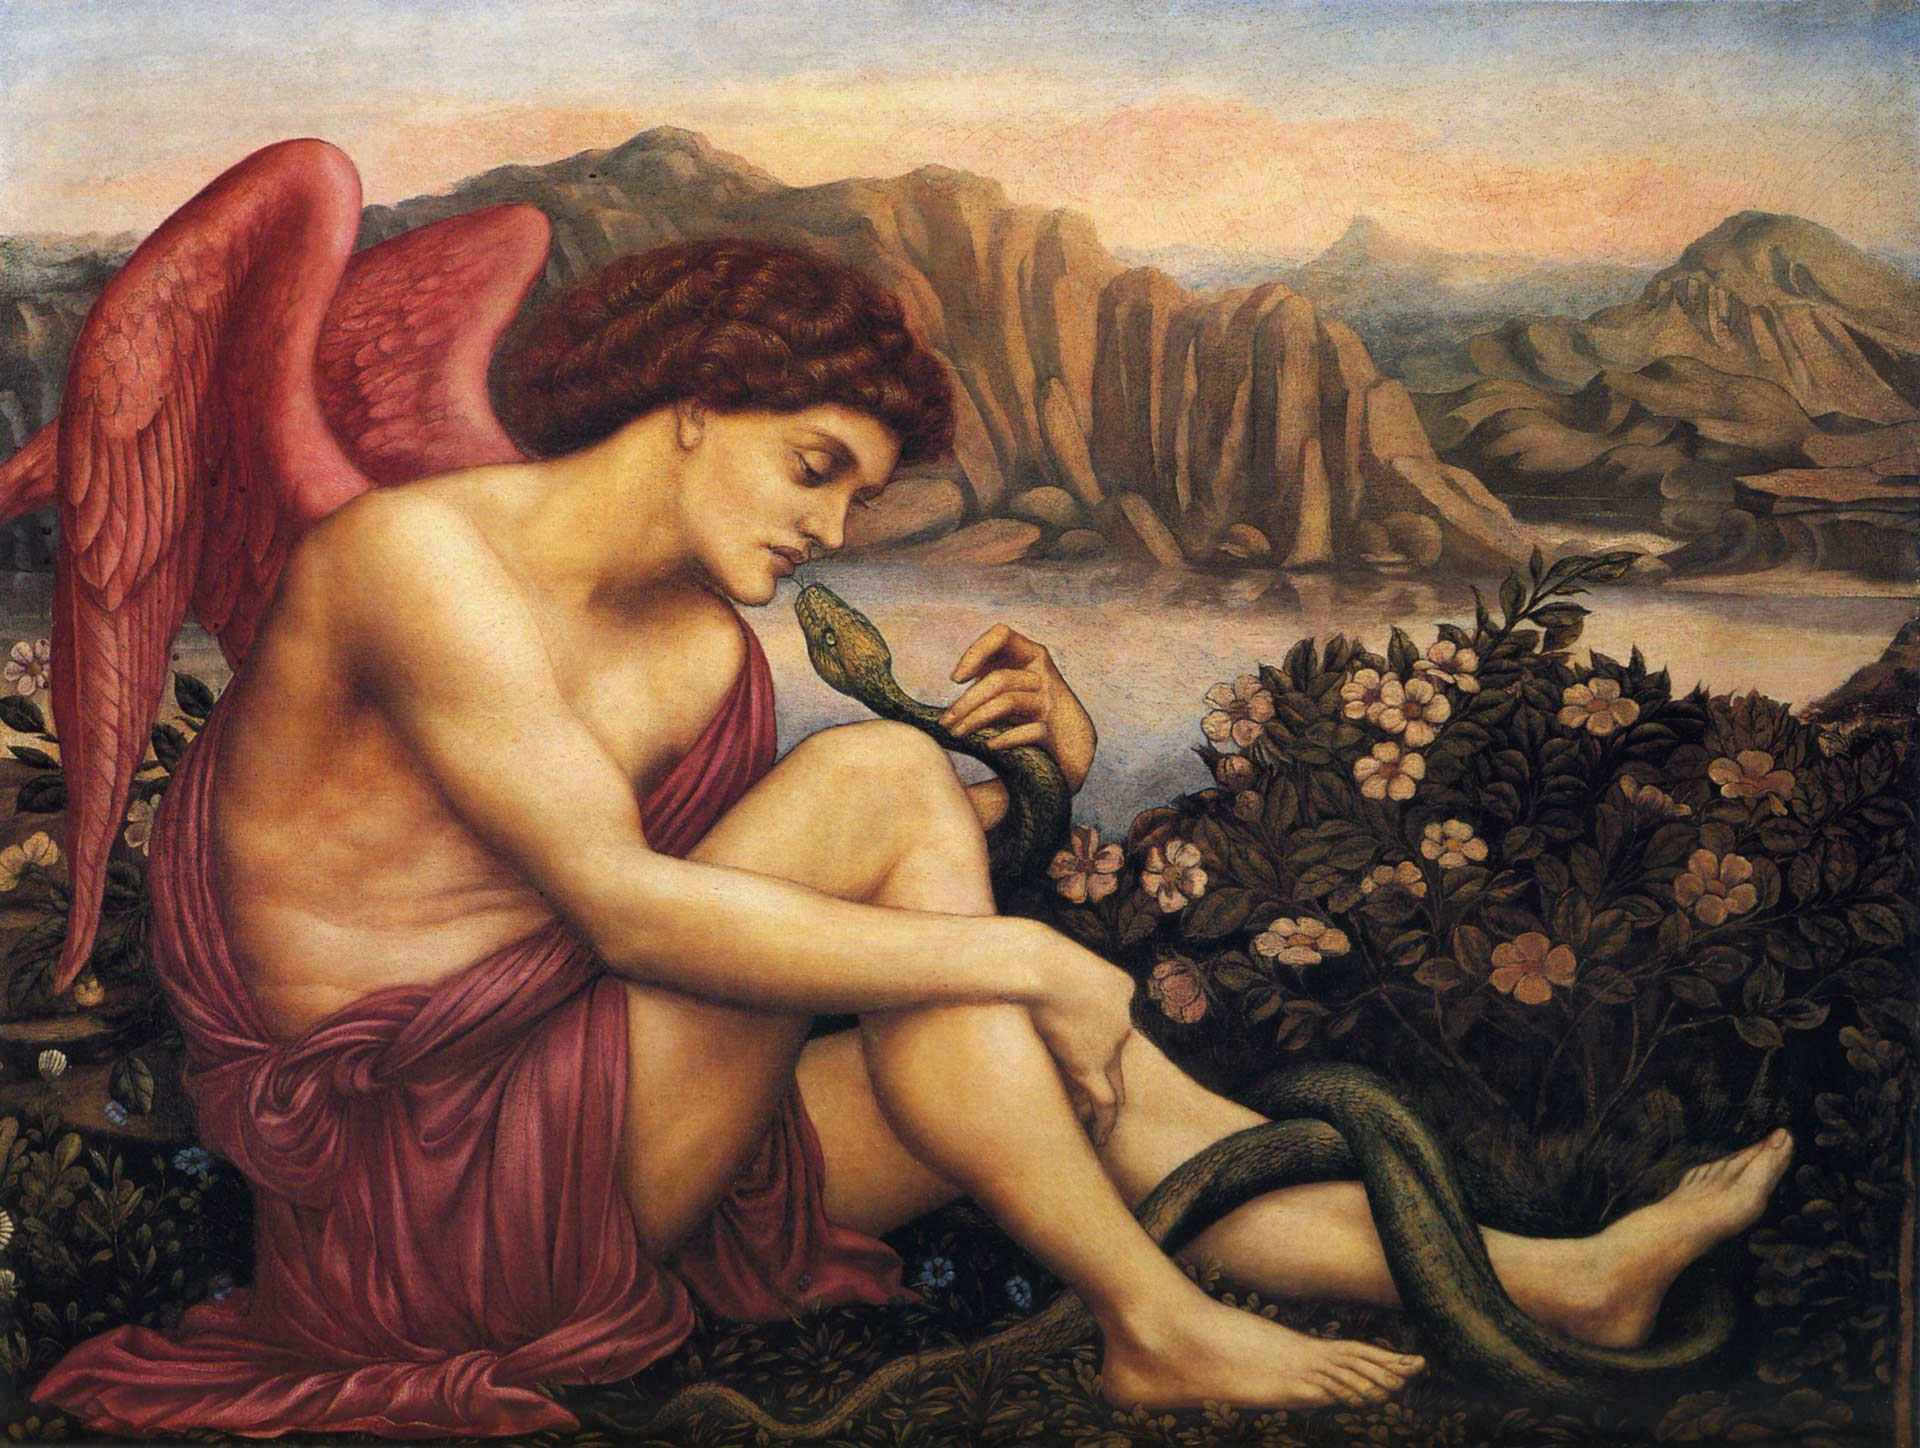 de-morgan-angel-serpent.jpg